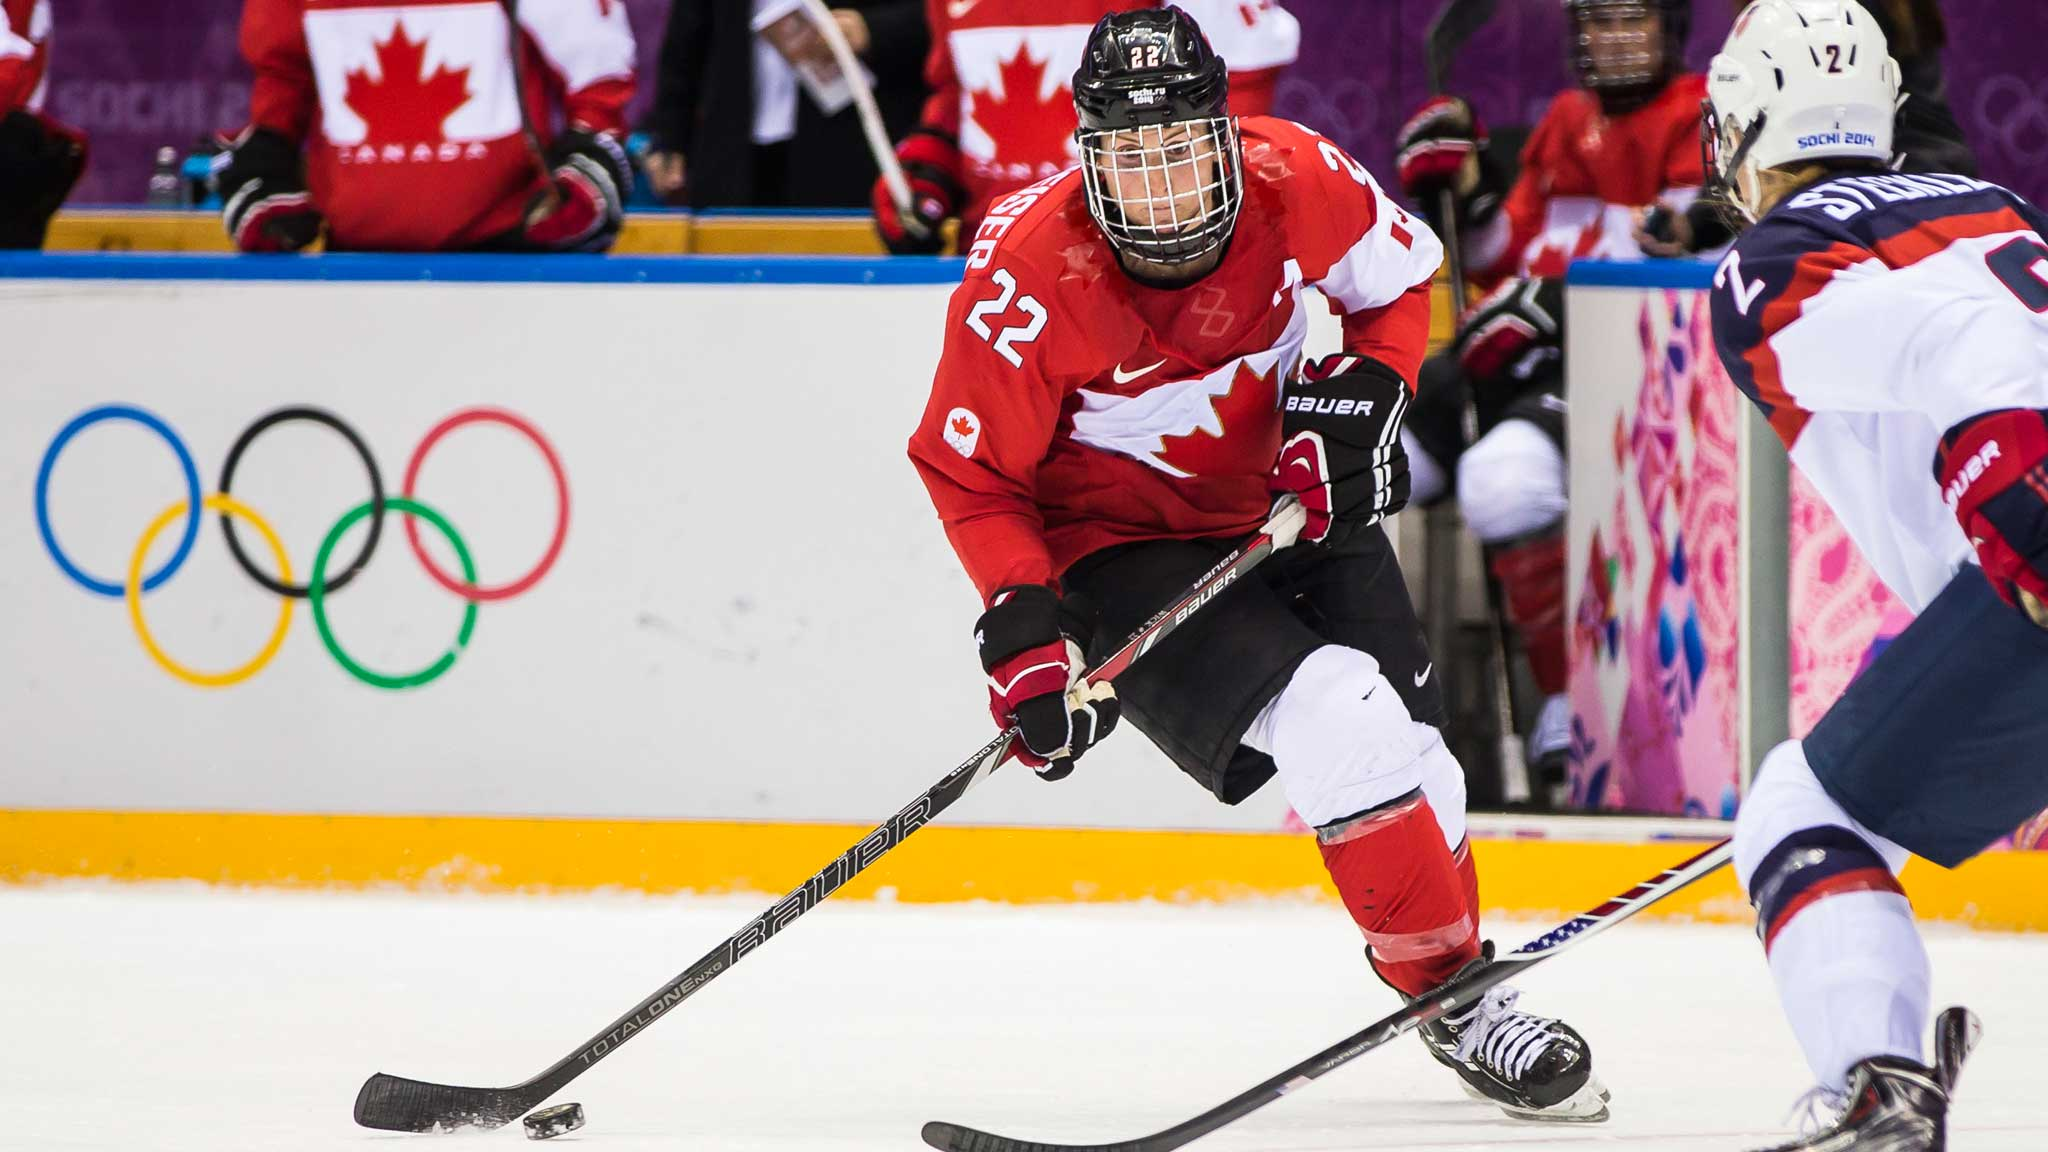 Concussions in Youth Sports Virtual Classroom: Featuring Hayley Wickenheiser and Scott Russell